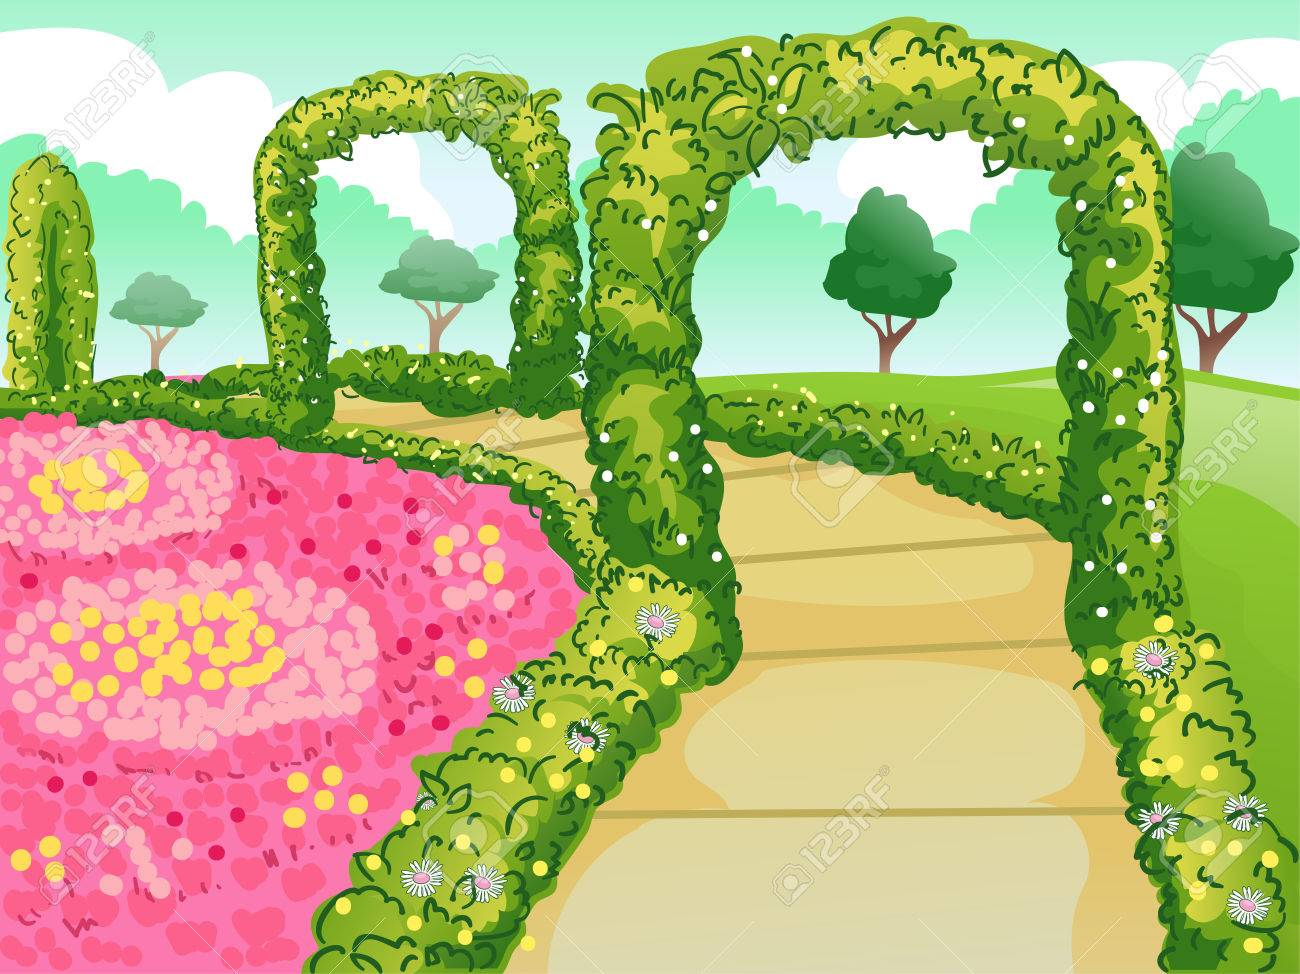 Illustration Of A Botanical Garden With A Path Lined With Flowers